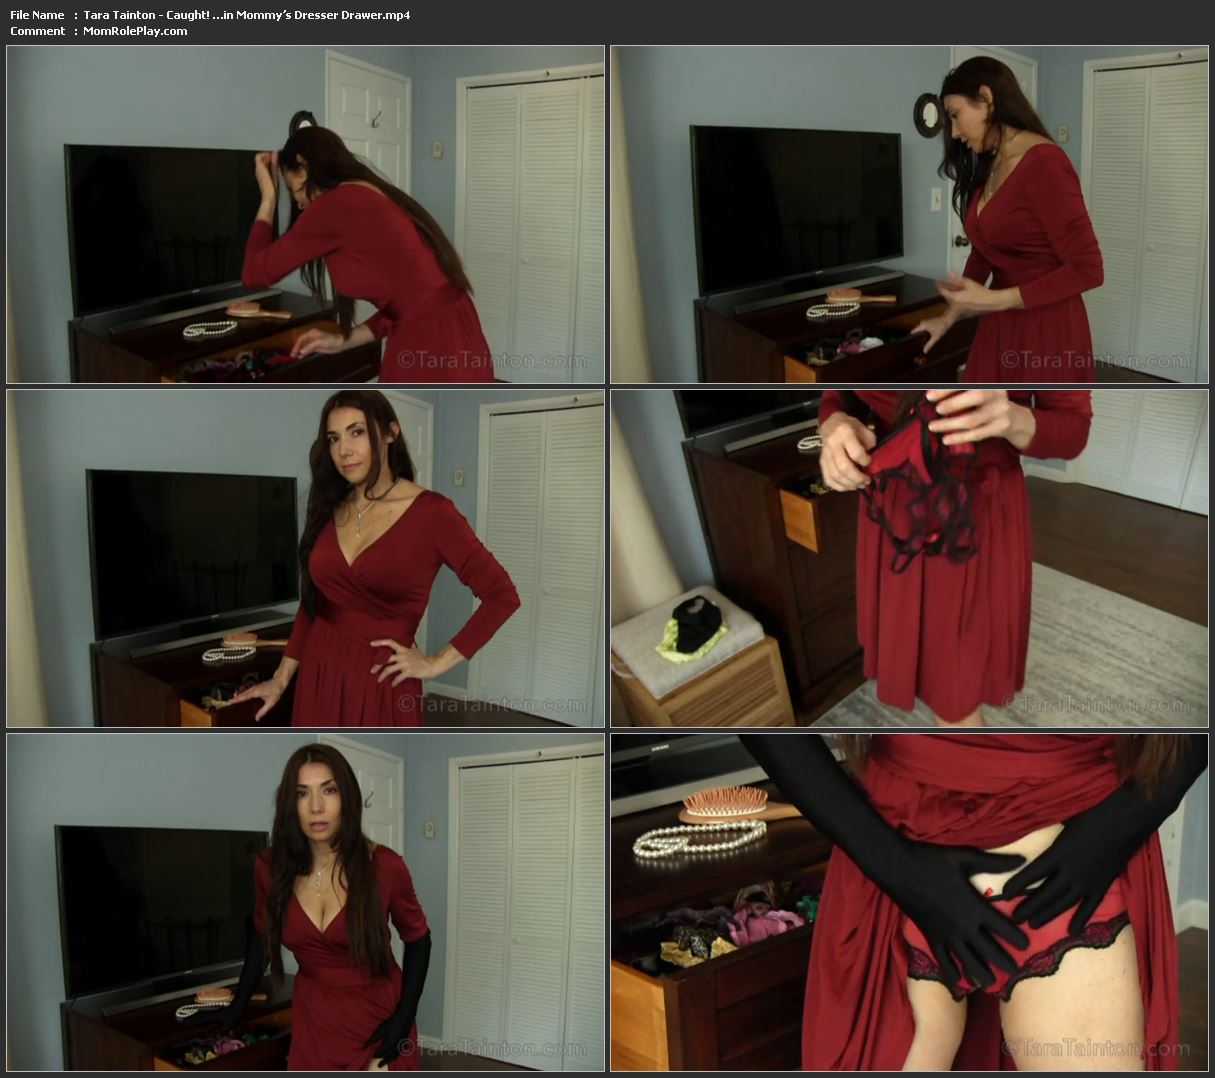 Tara Tainton - Caught! …in Mommy's Dresser Drawer